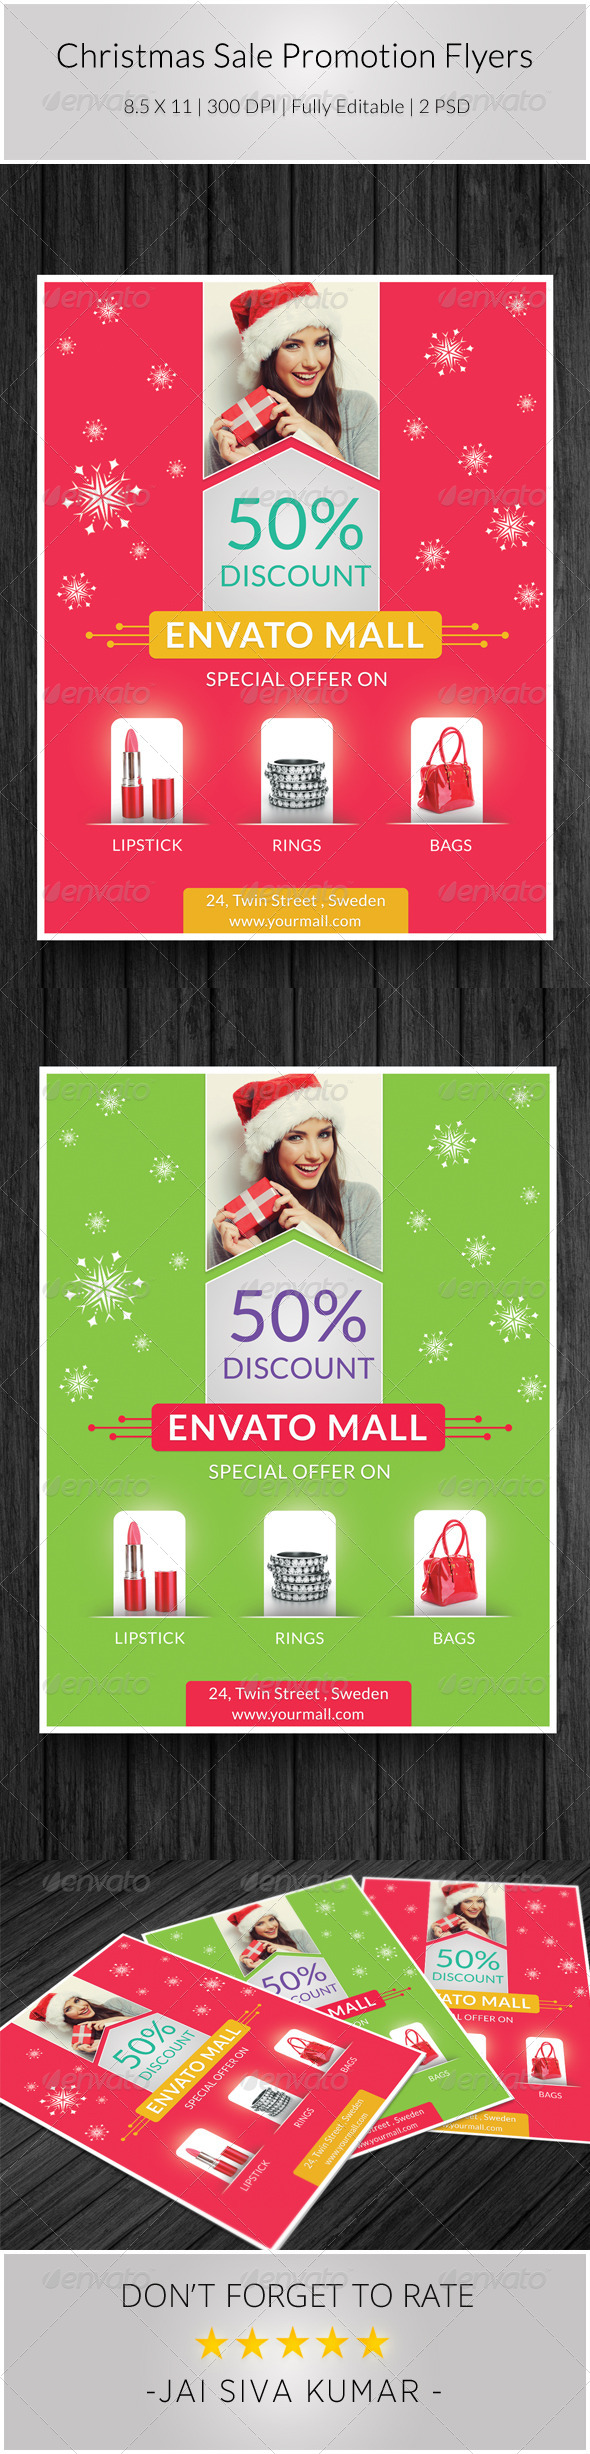 GraphicRiver Christmas Sale Promotion Flyers 6187947